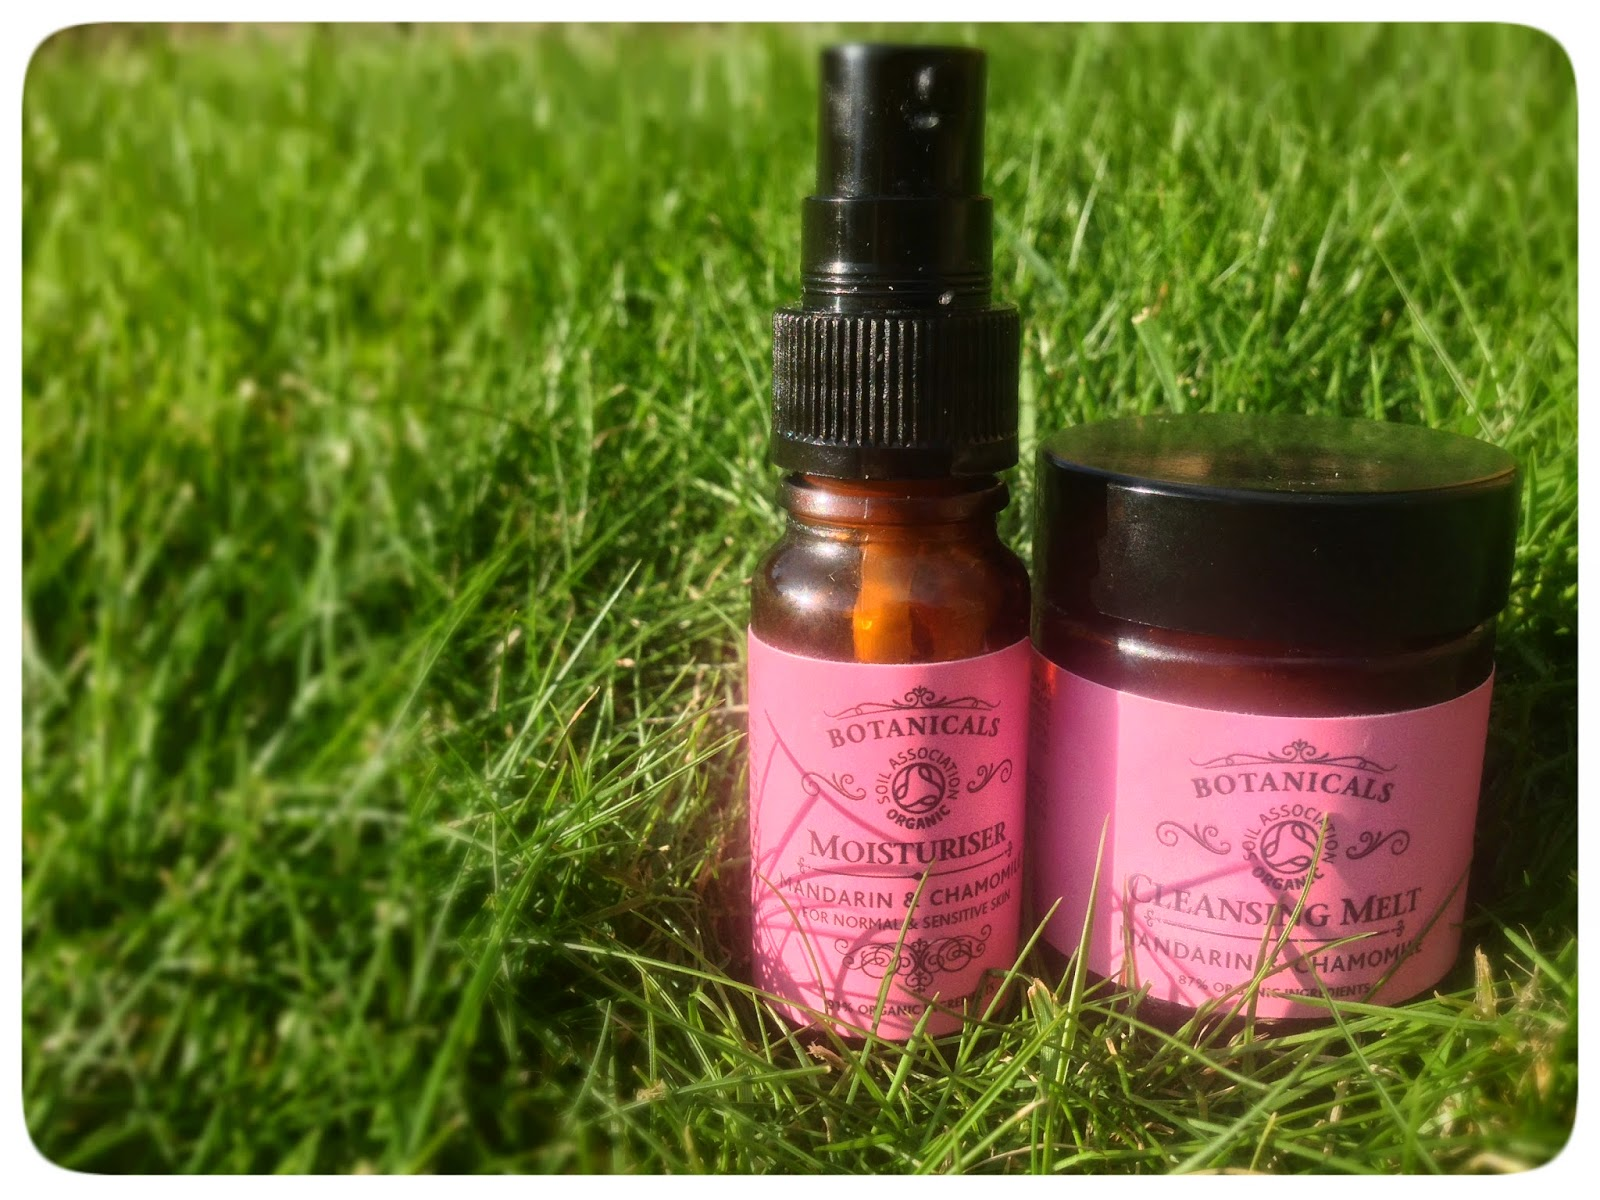 Botanicals Natural Organic Skincare: Review